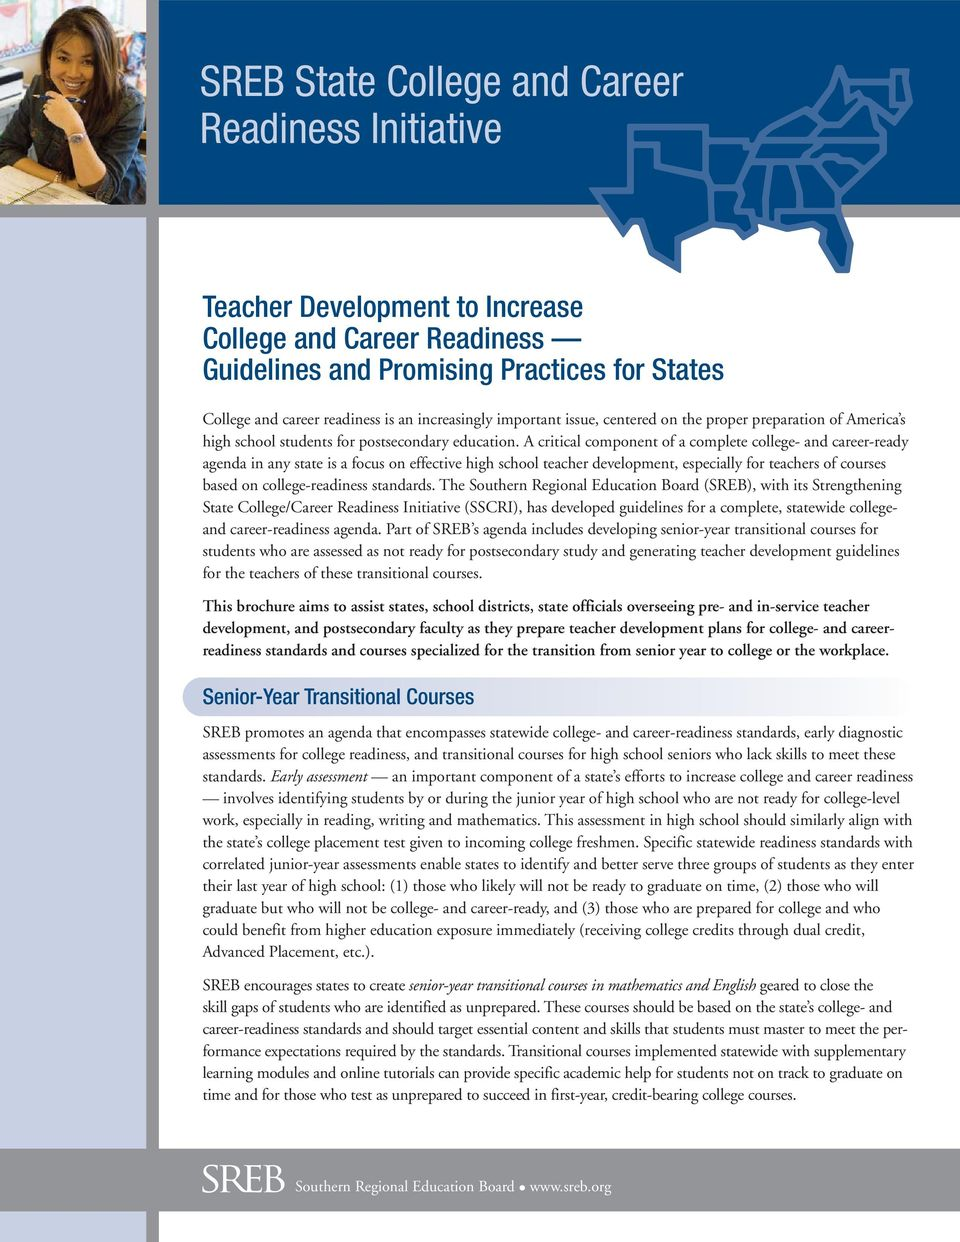 A critical component of a complete college- and career-ready agenda in any state is a focus on effective high school teacher development, especially for teachers of courses based on college-readiness